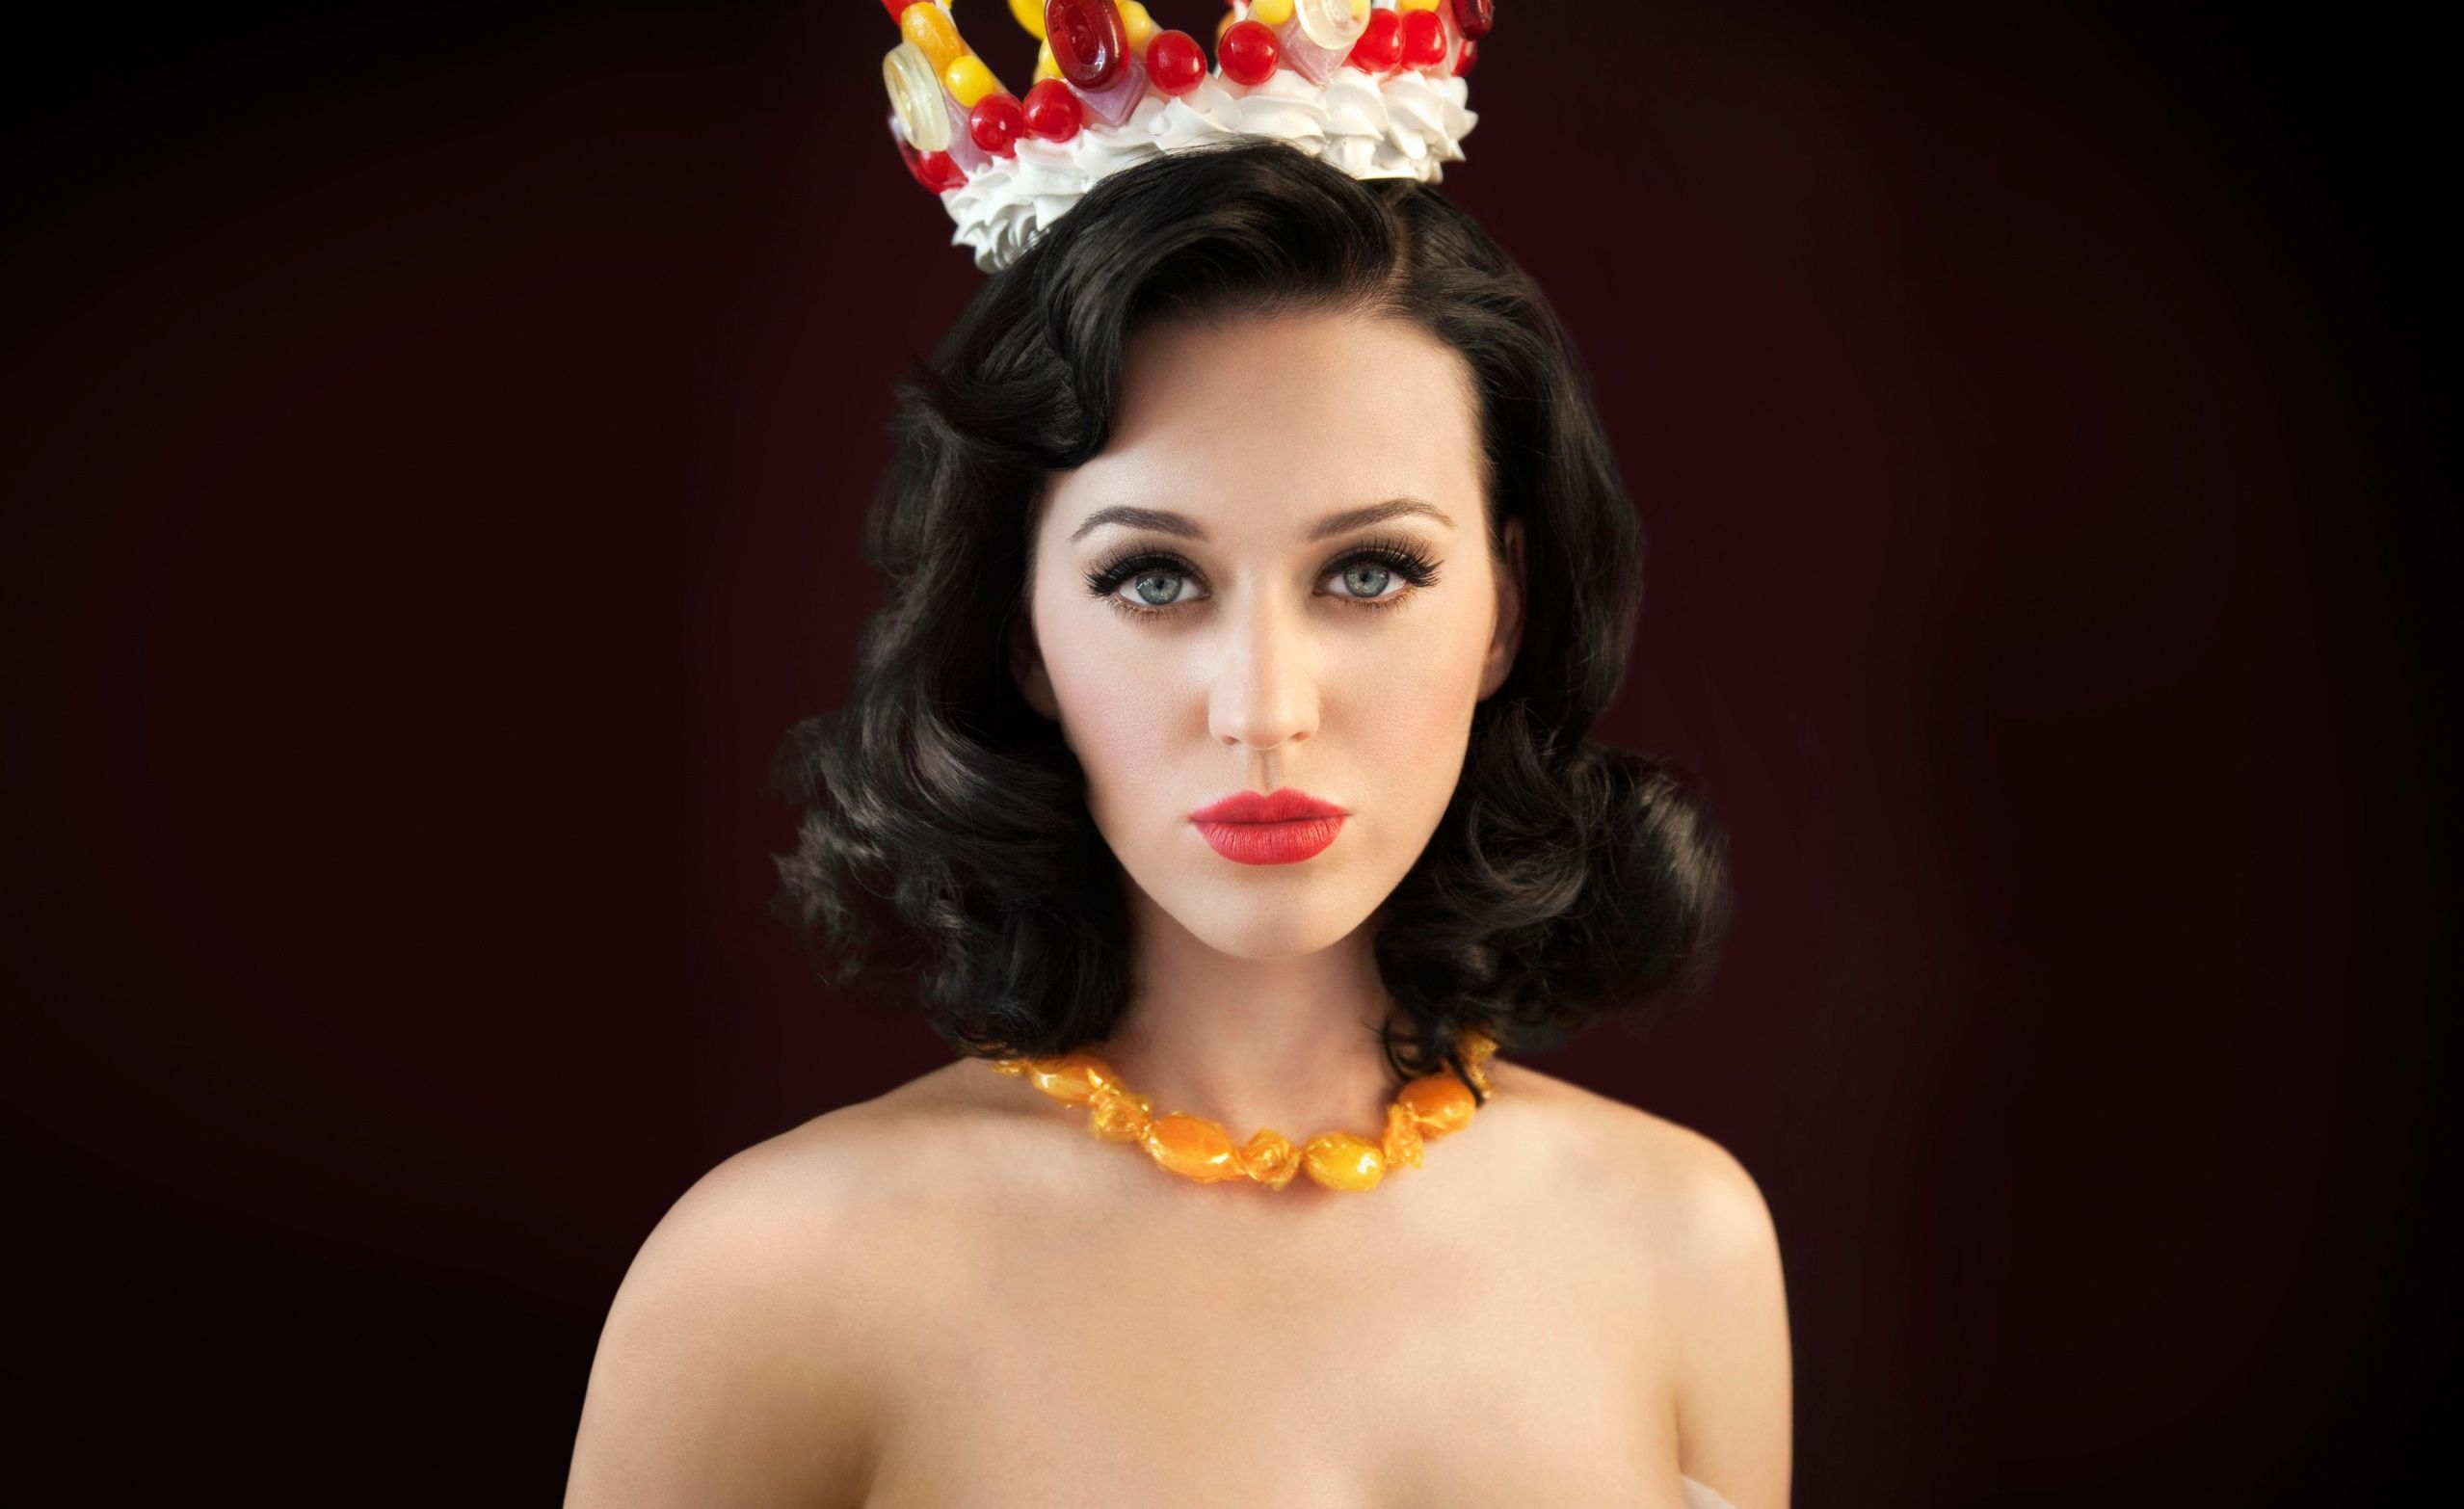 Katy Perry Wallpapers Backgrounds